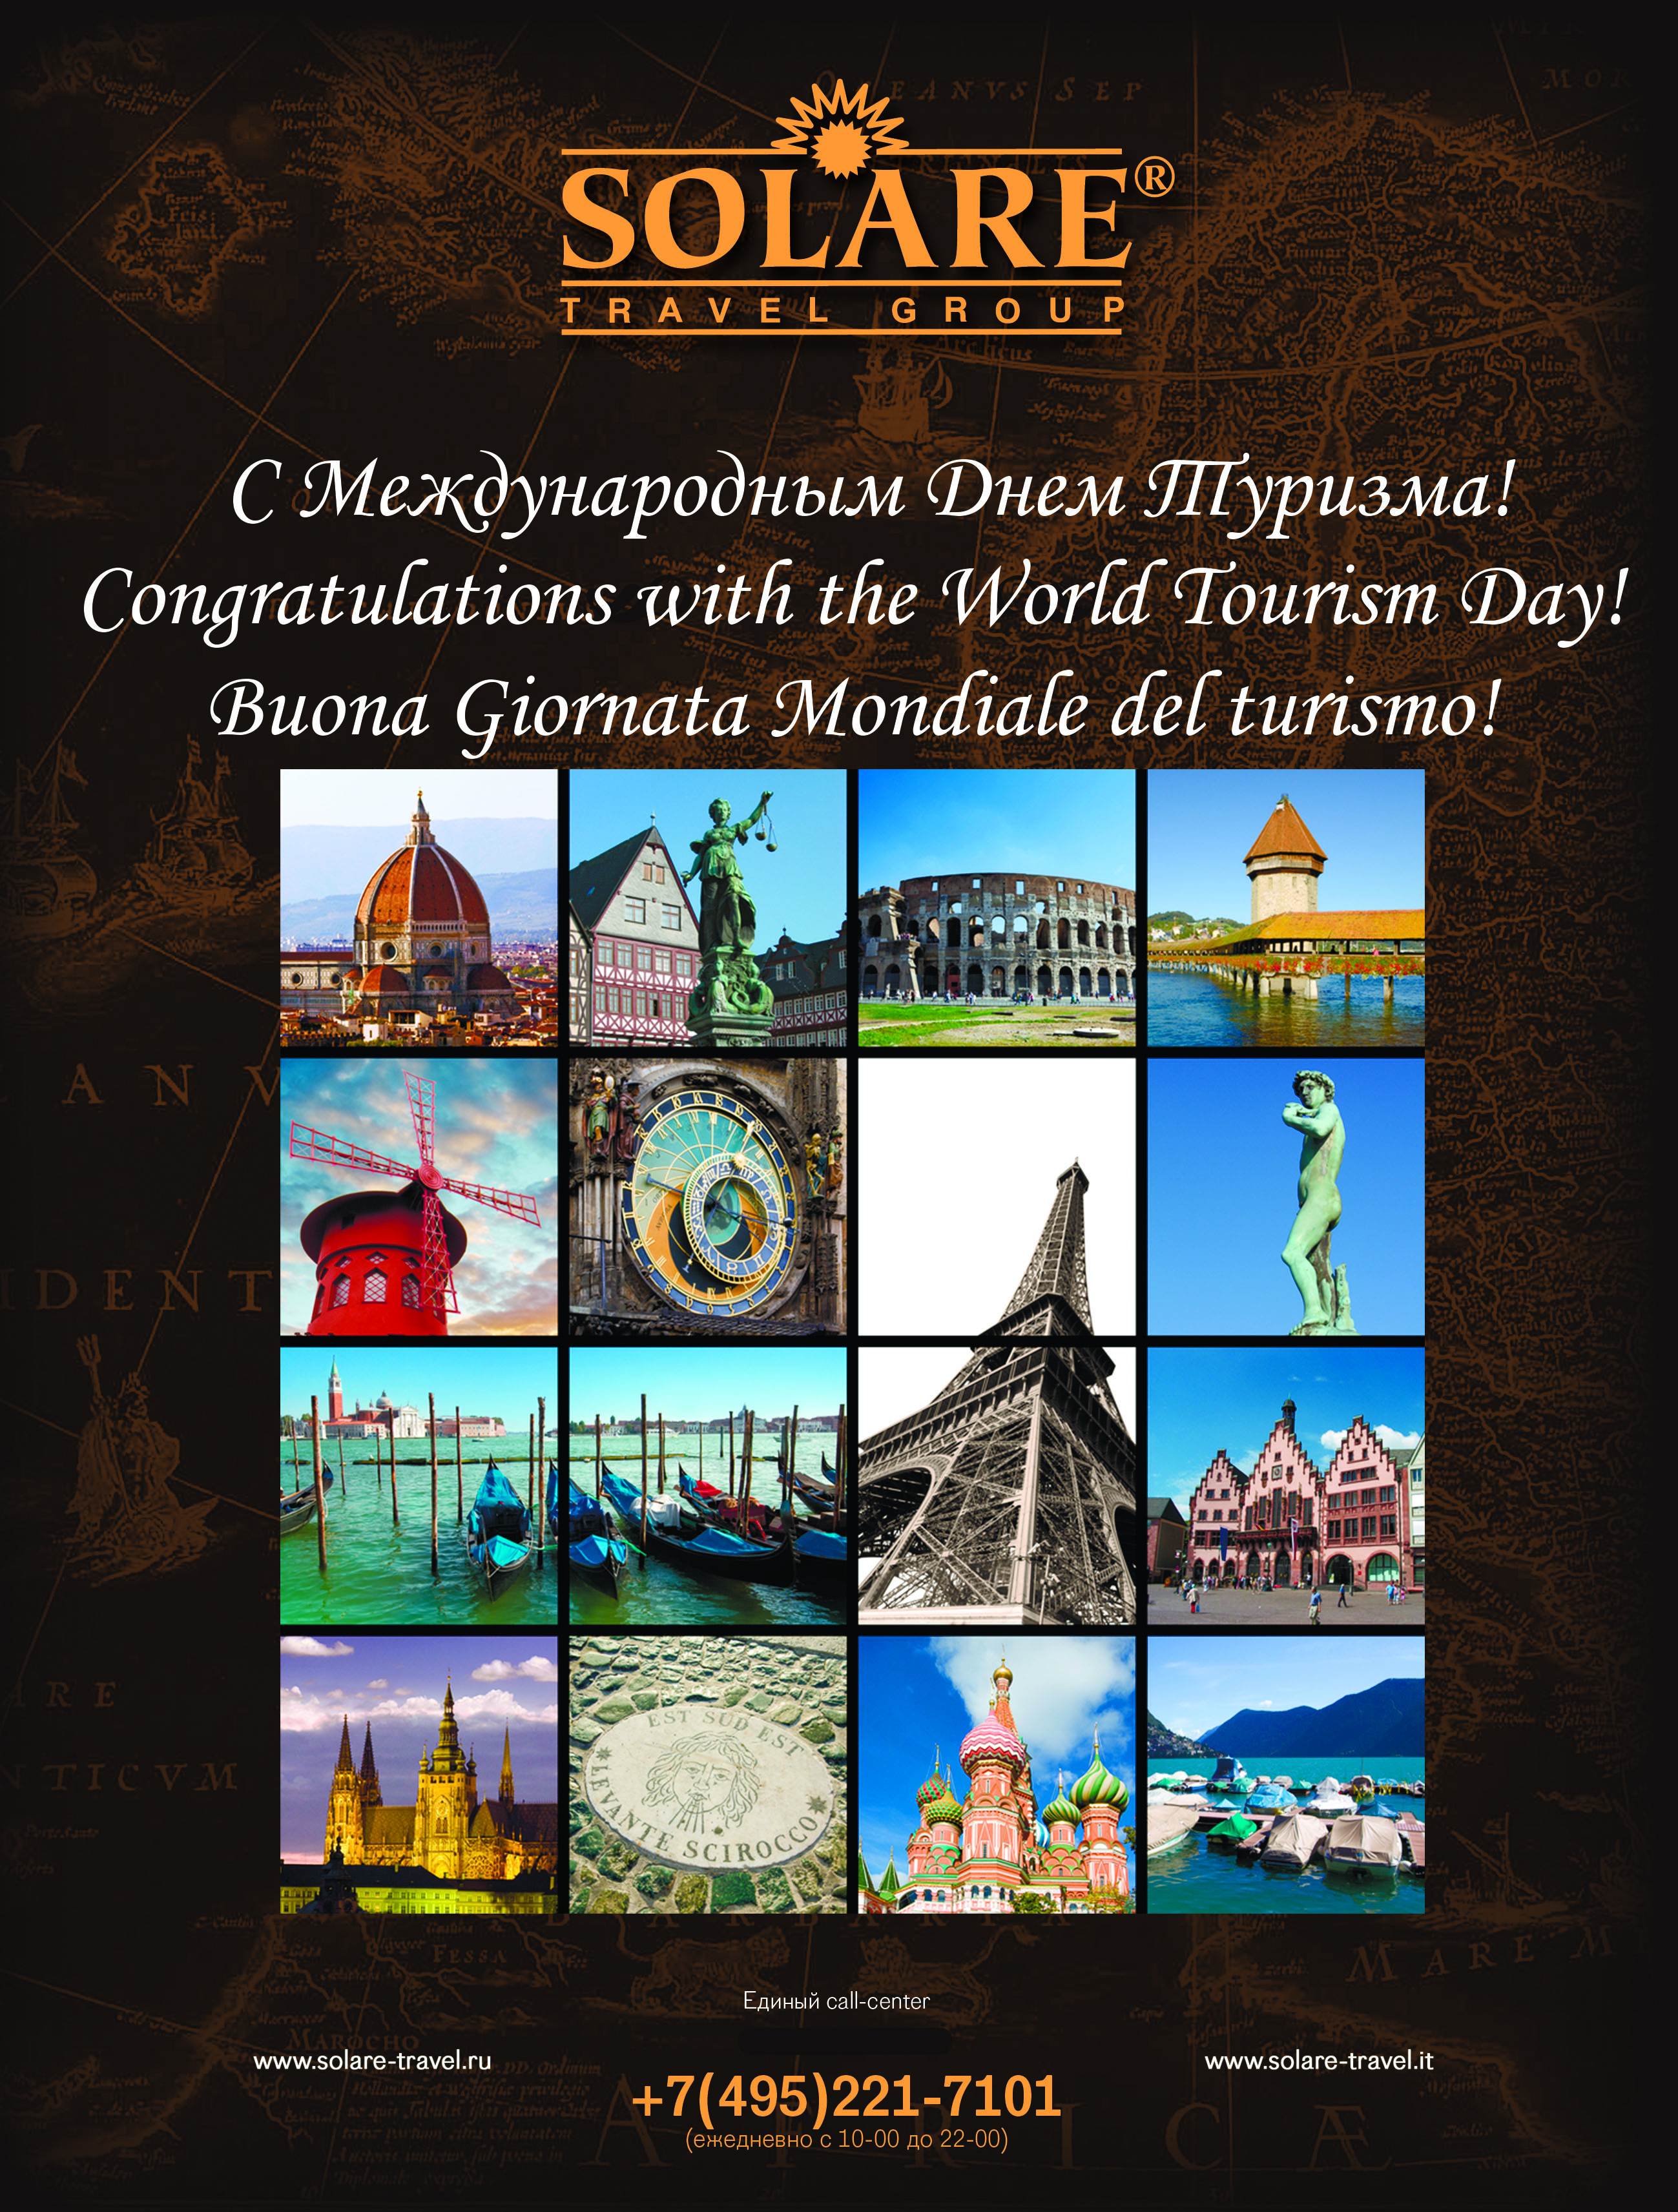 Congratulations to colleagues on Tourism Day 64